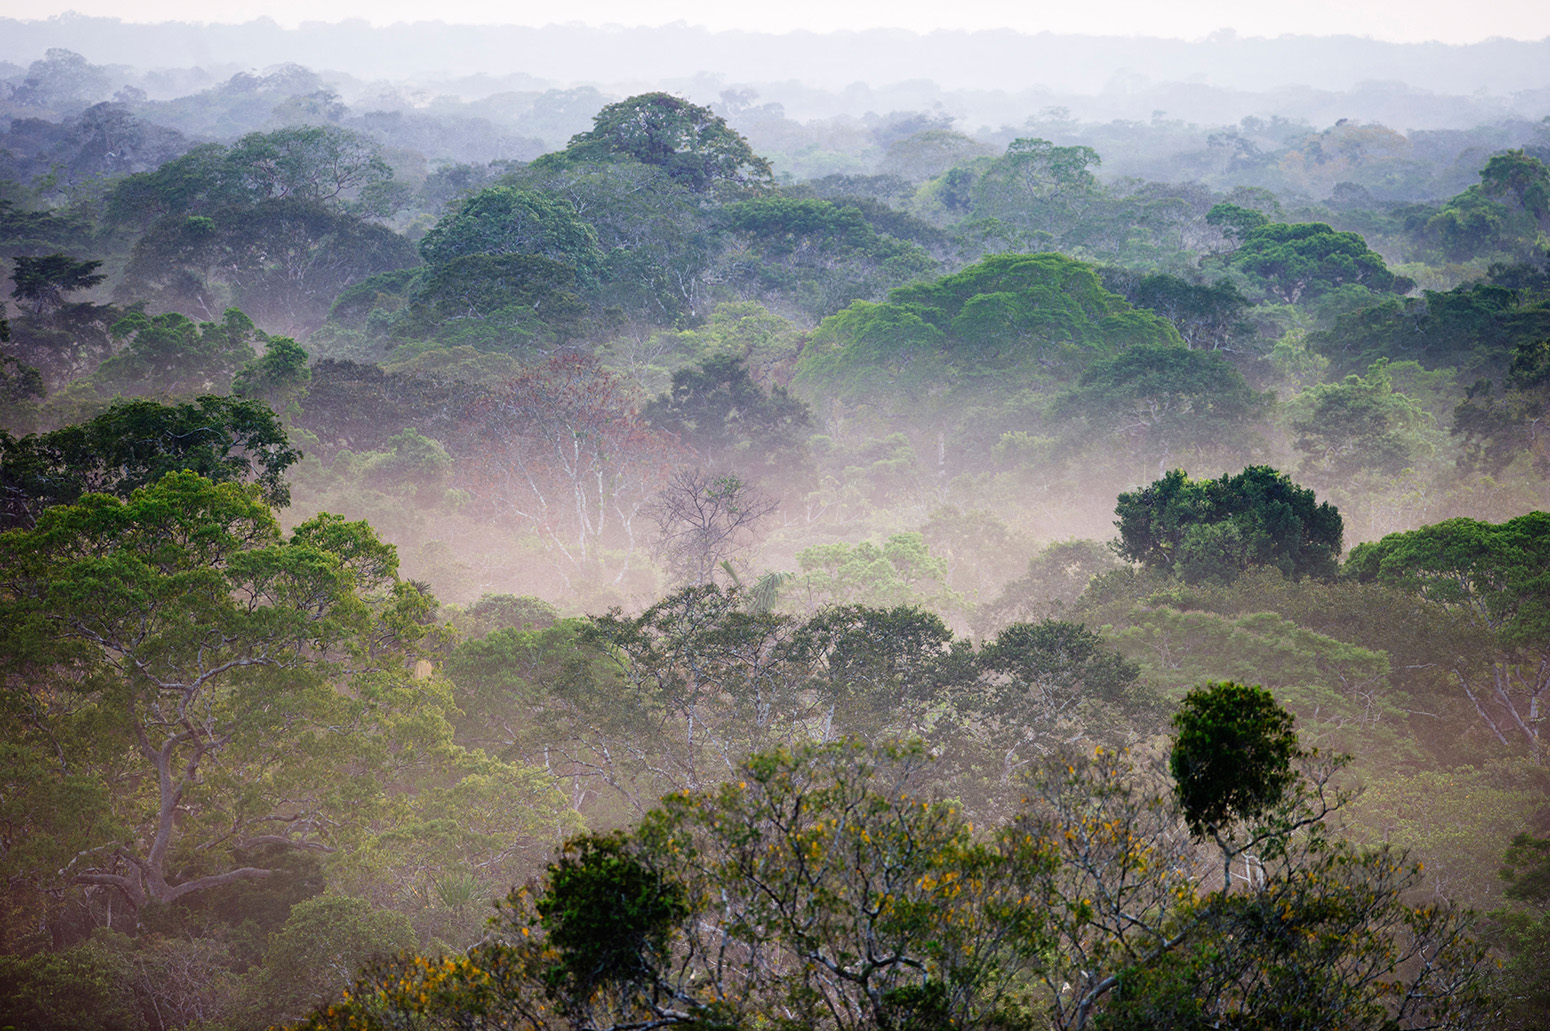 View across canopy of Amazon rainforest with mist at dawn. Credit: David Tipling Photo Library / Alamy Stock Photo. C8XHJF